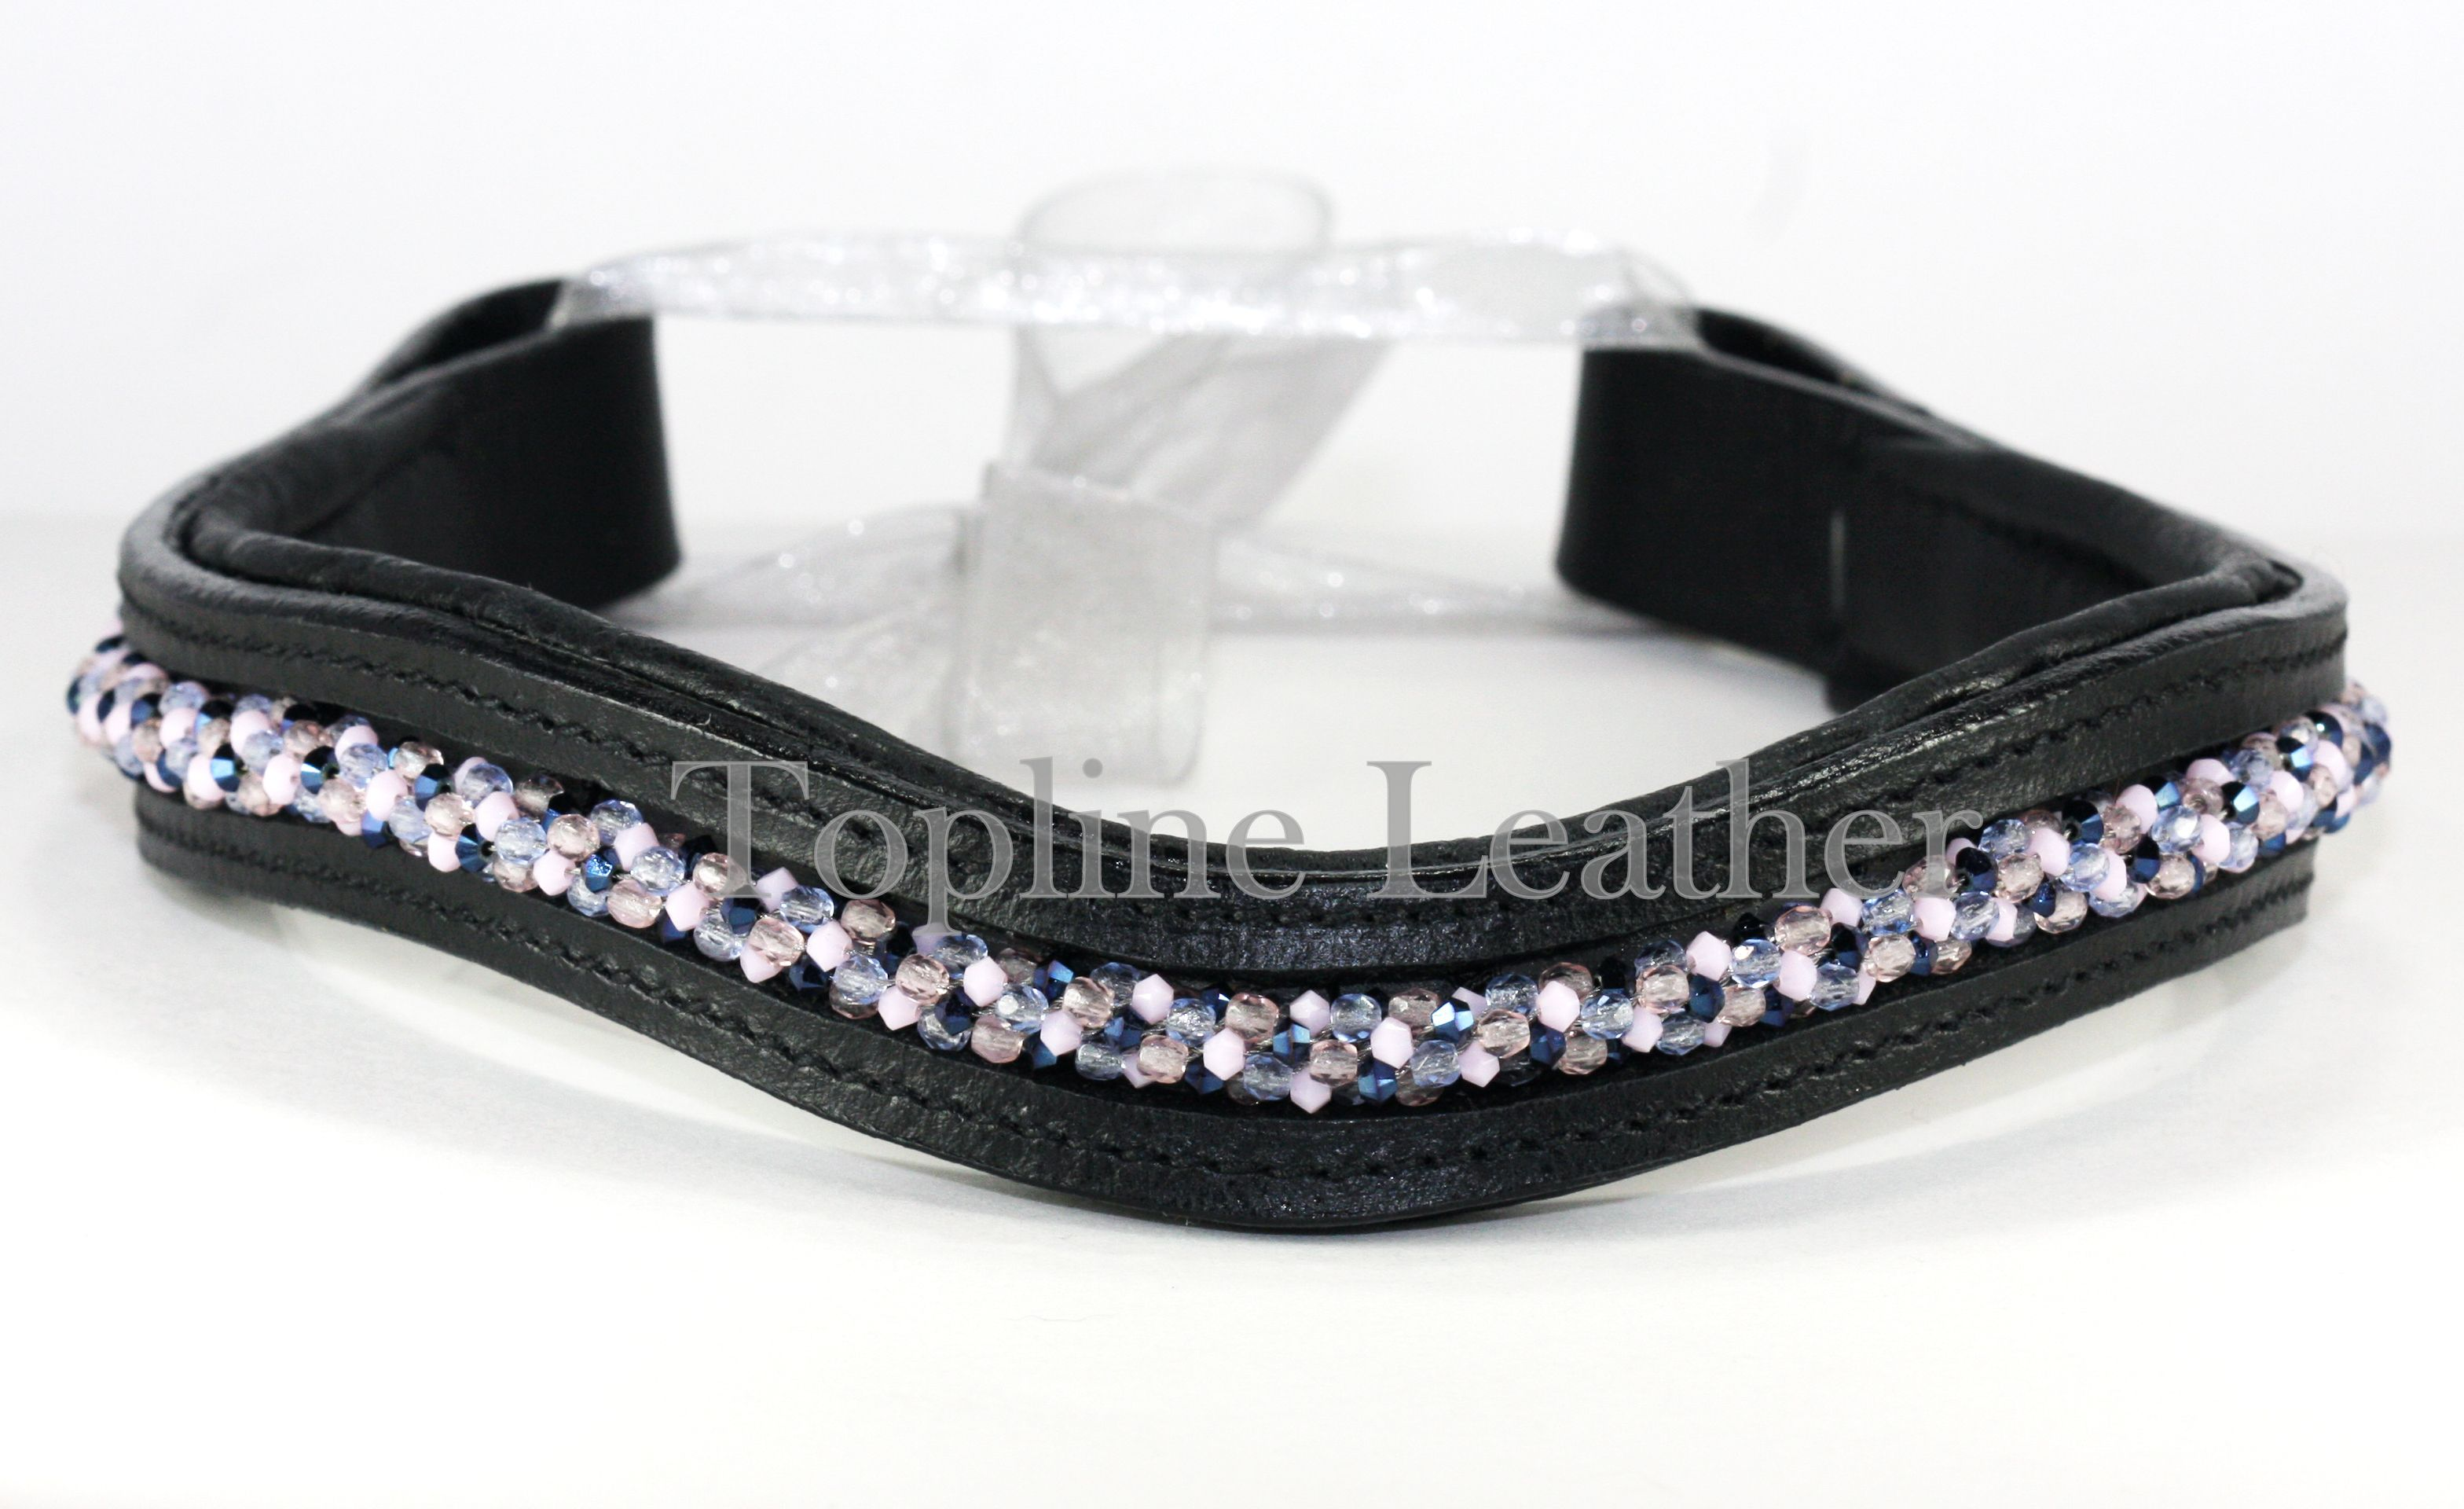 Custom Handmade Woven Crystal Browband Made By Topline Leather